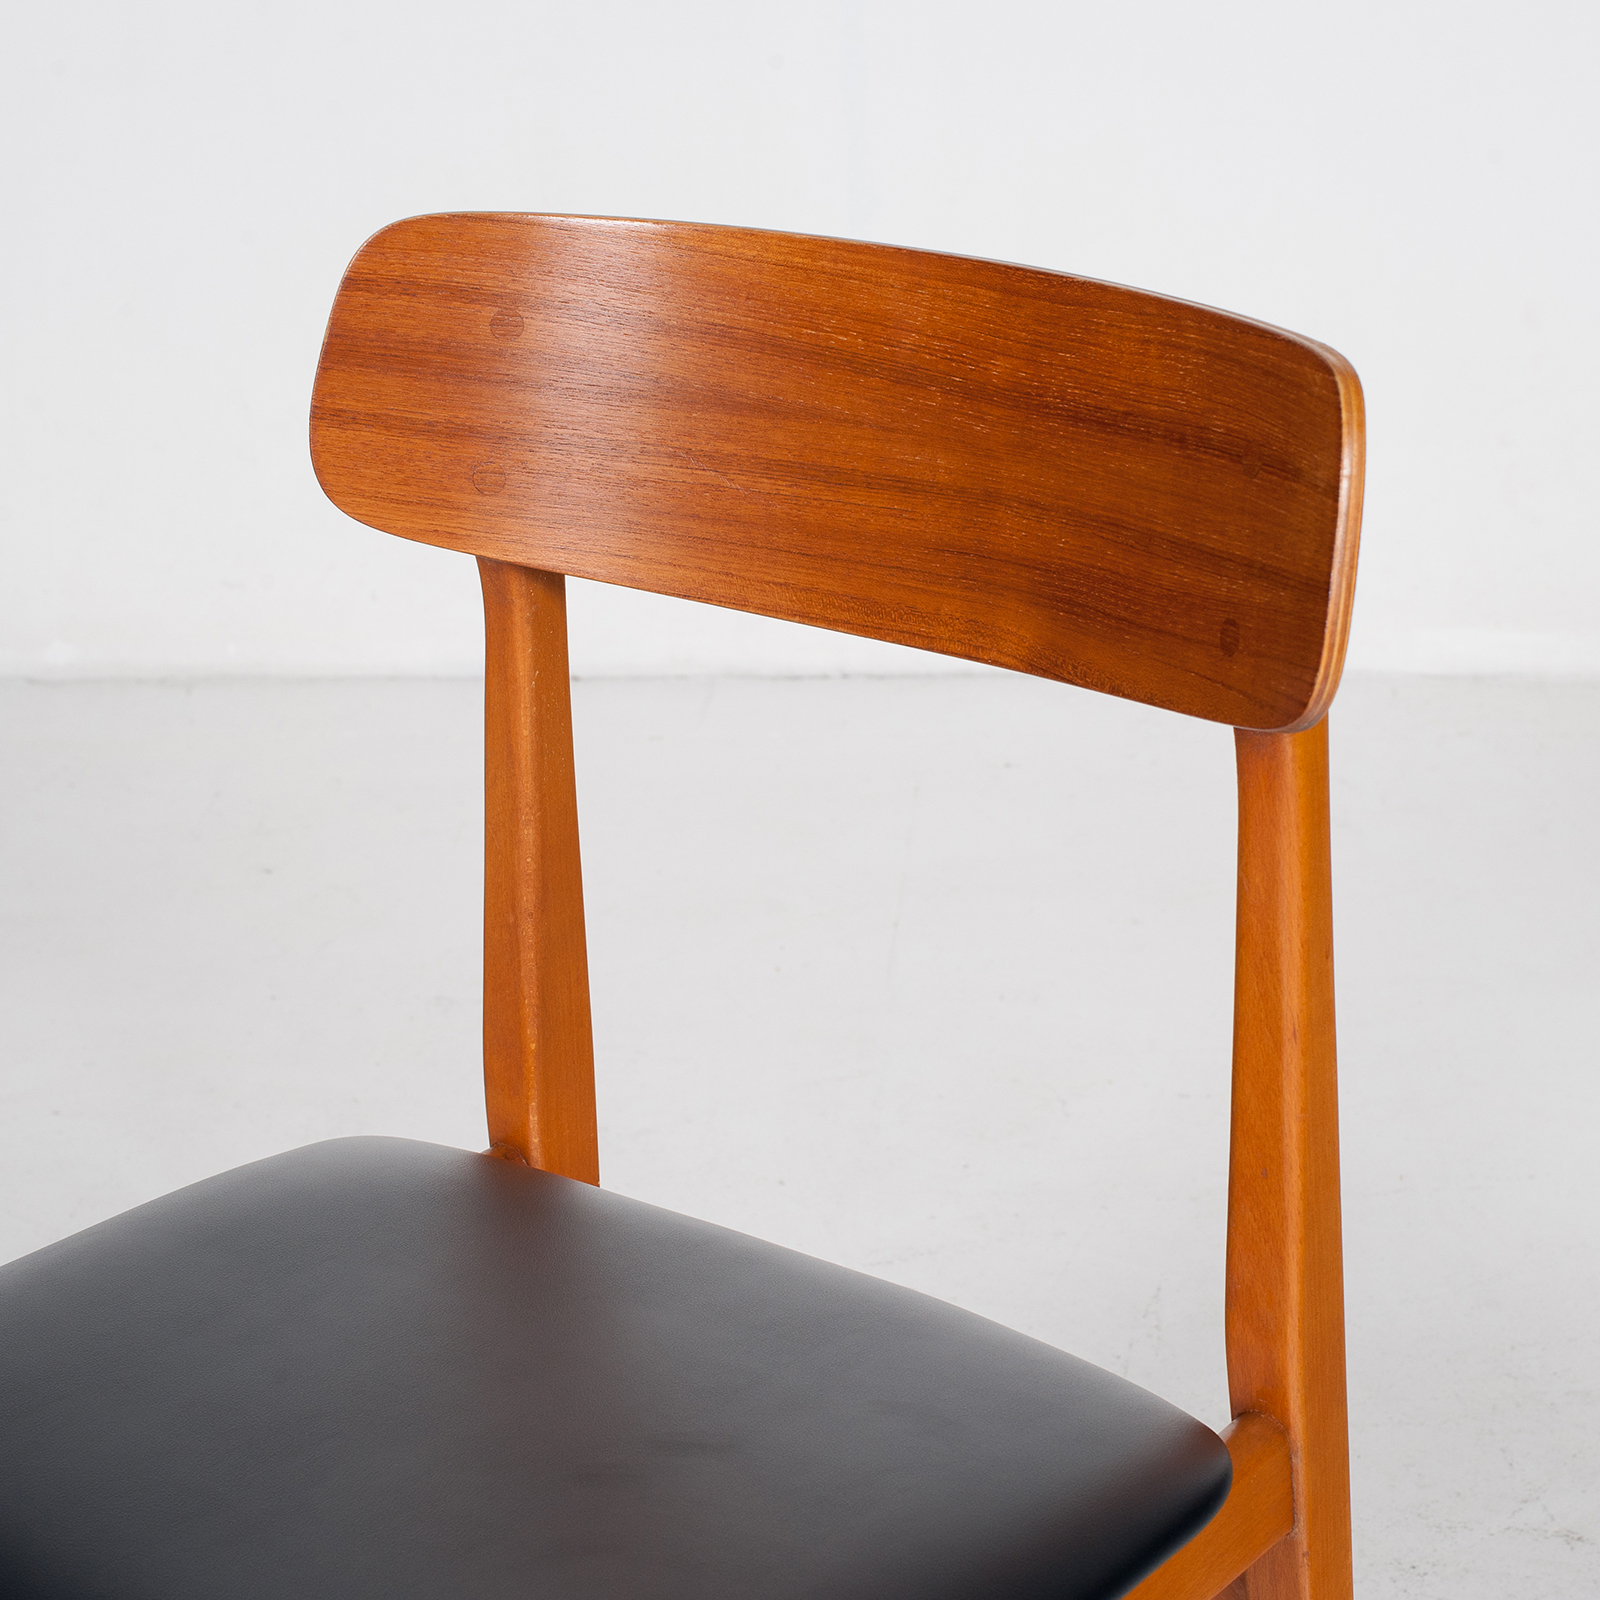 Set Of 4 Dining Chairs In Teak And Beech, 1960s, Denmark6